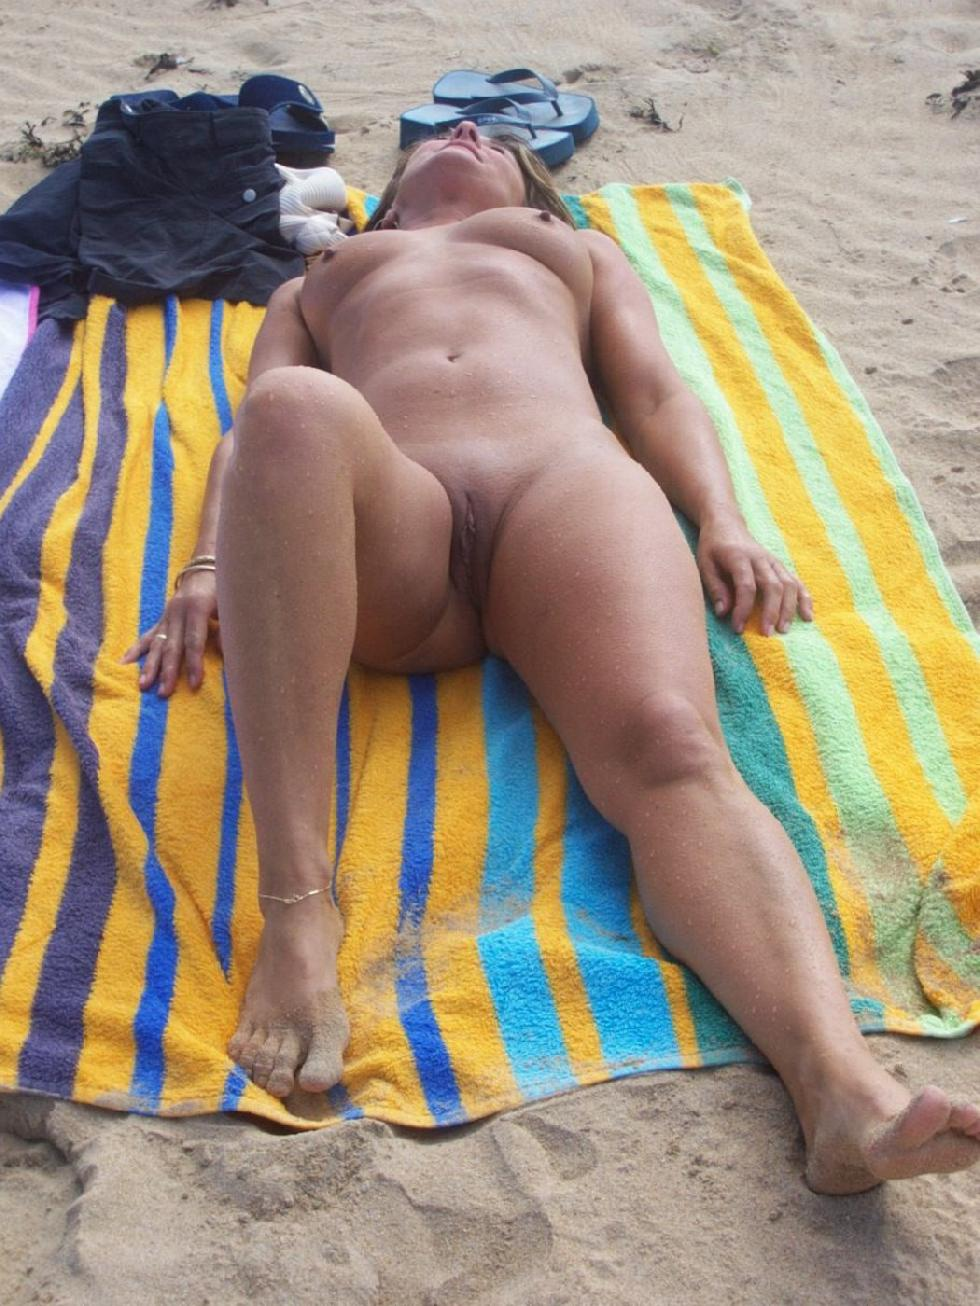 Amateur is relaxing on the beach - 4